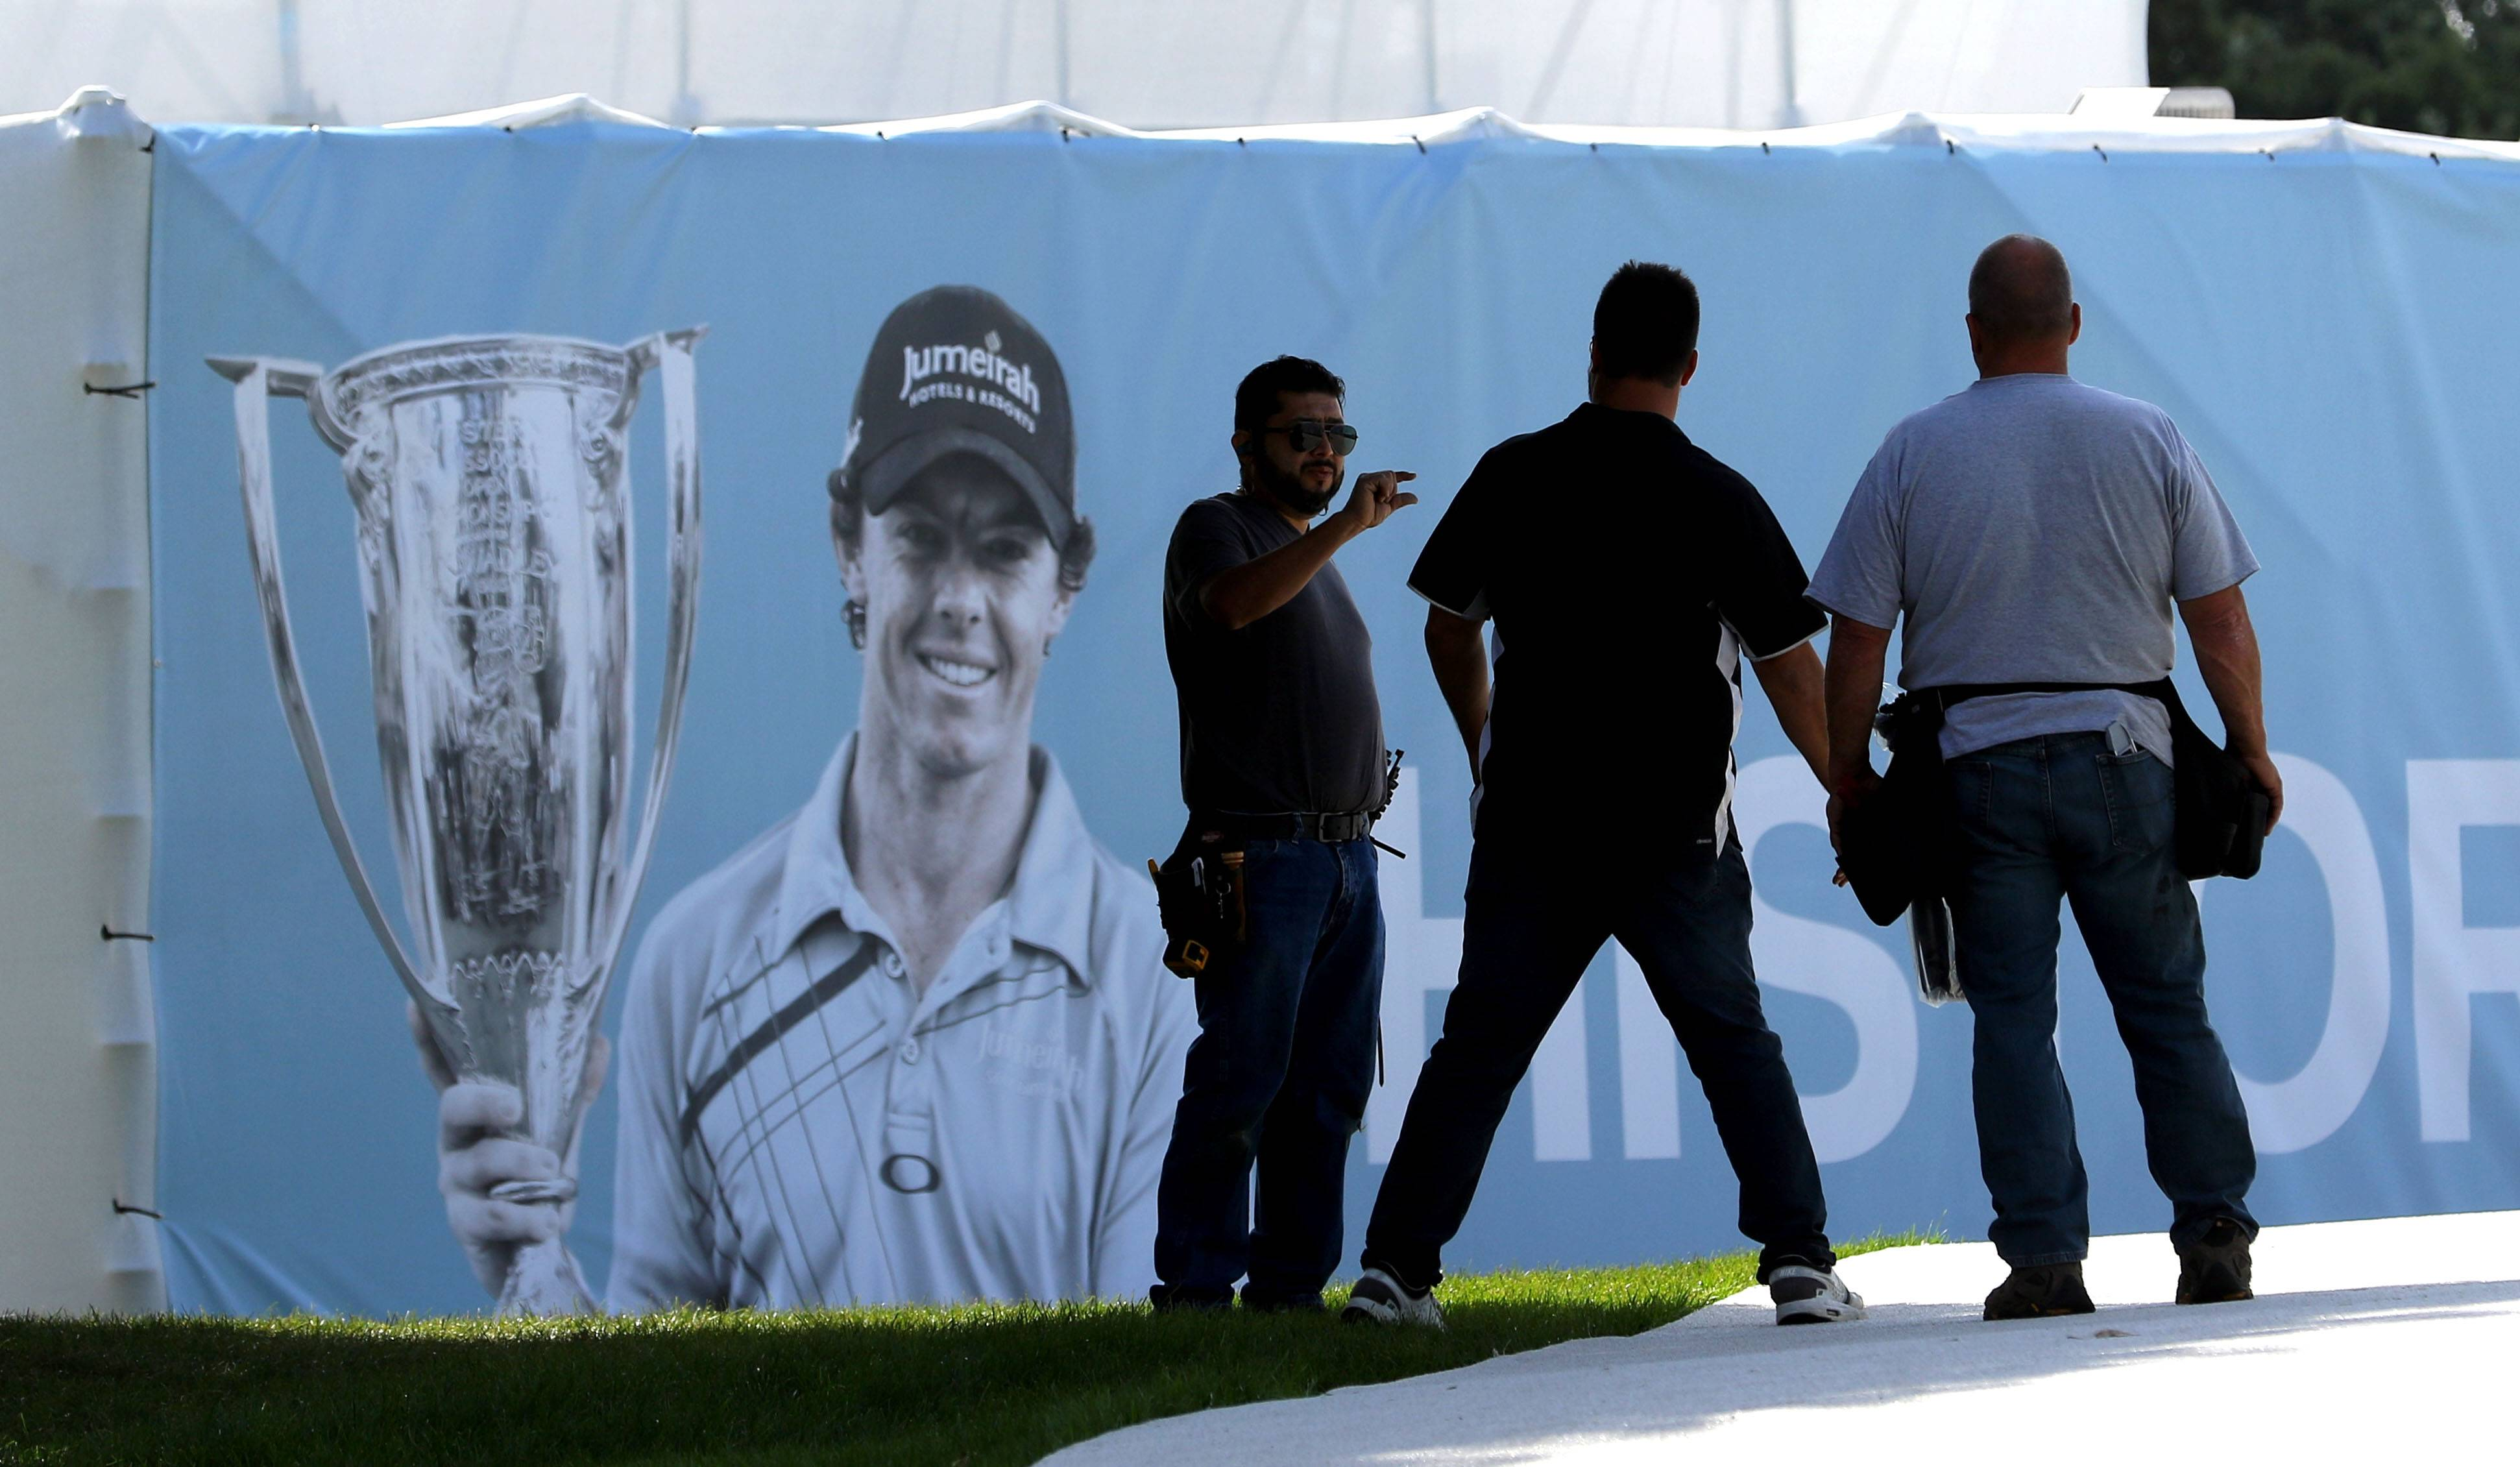 Workers hang banners at Conway Farms in Lake Forest, which will host the BMW Championship golf tournament this week.